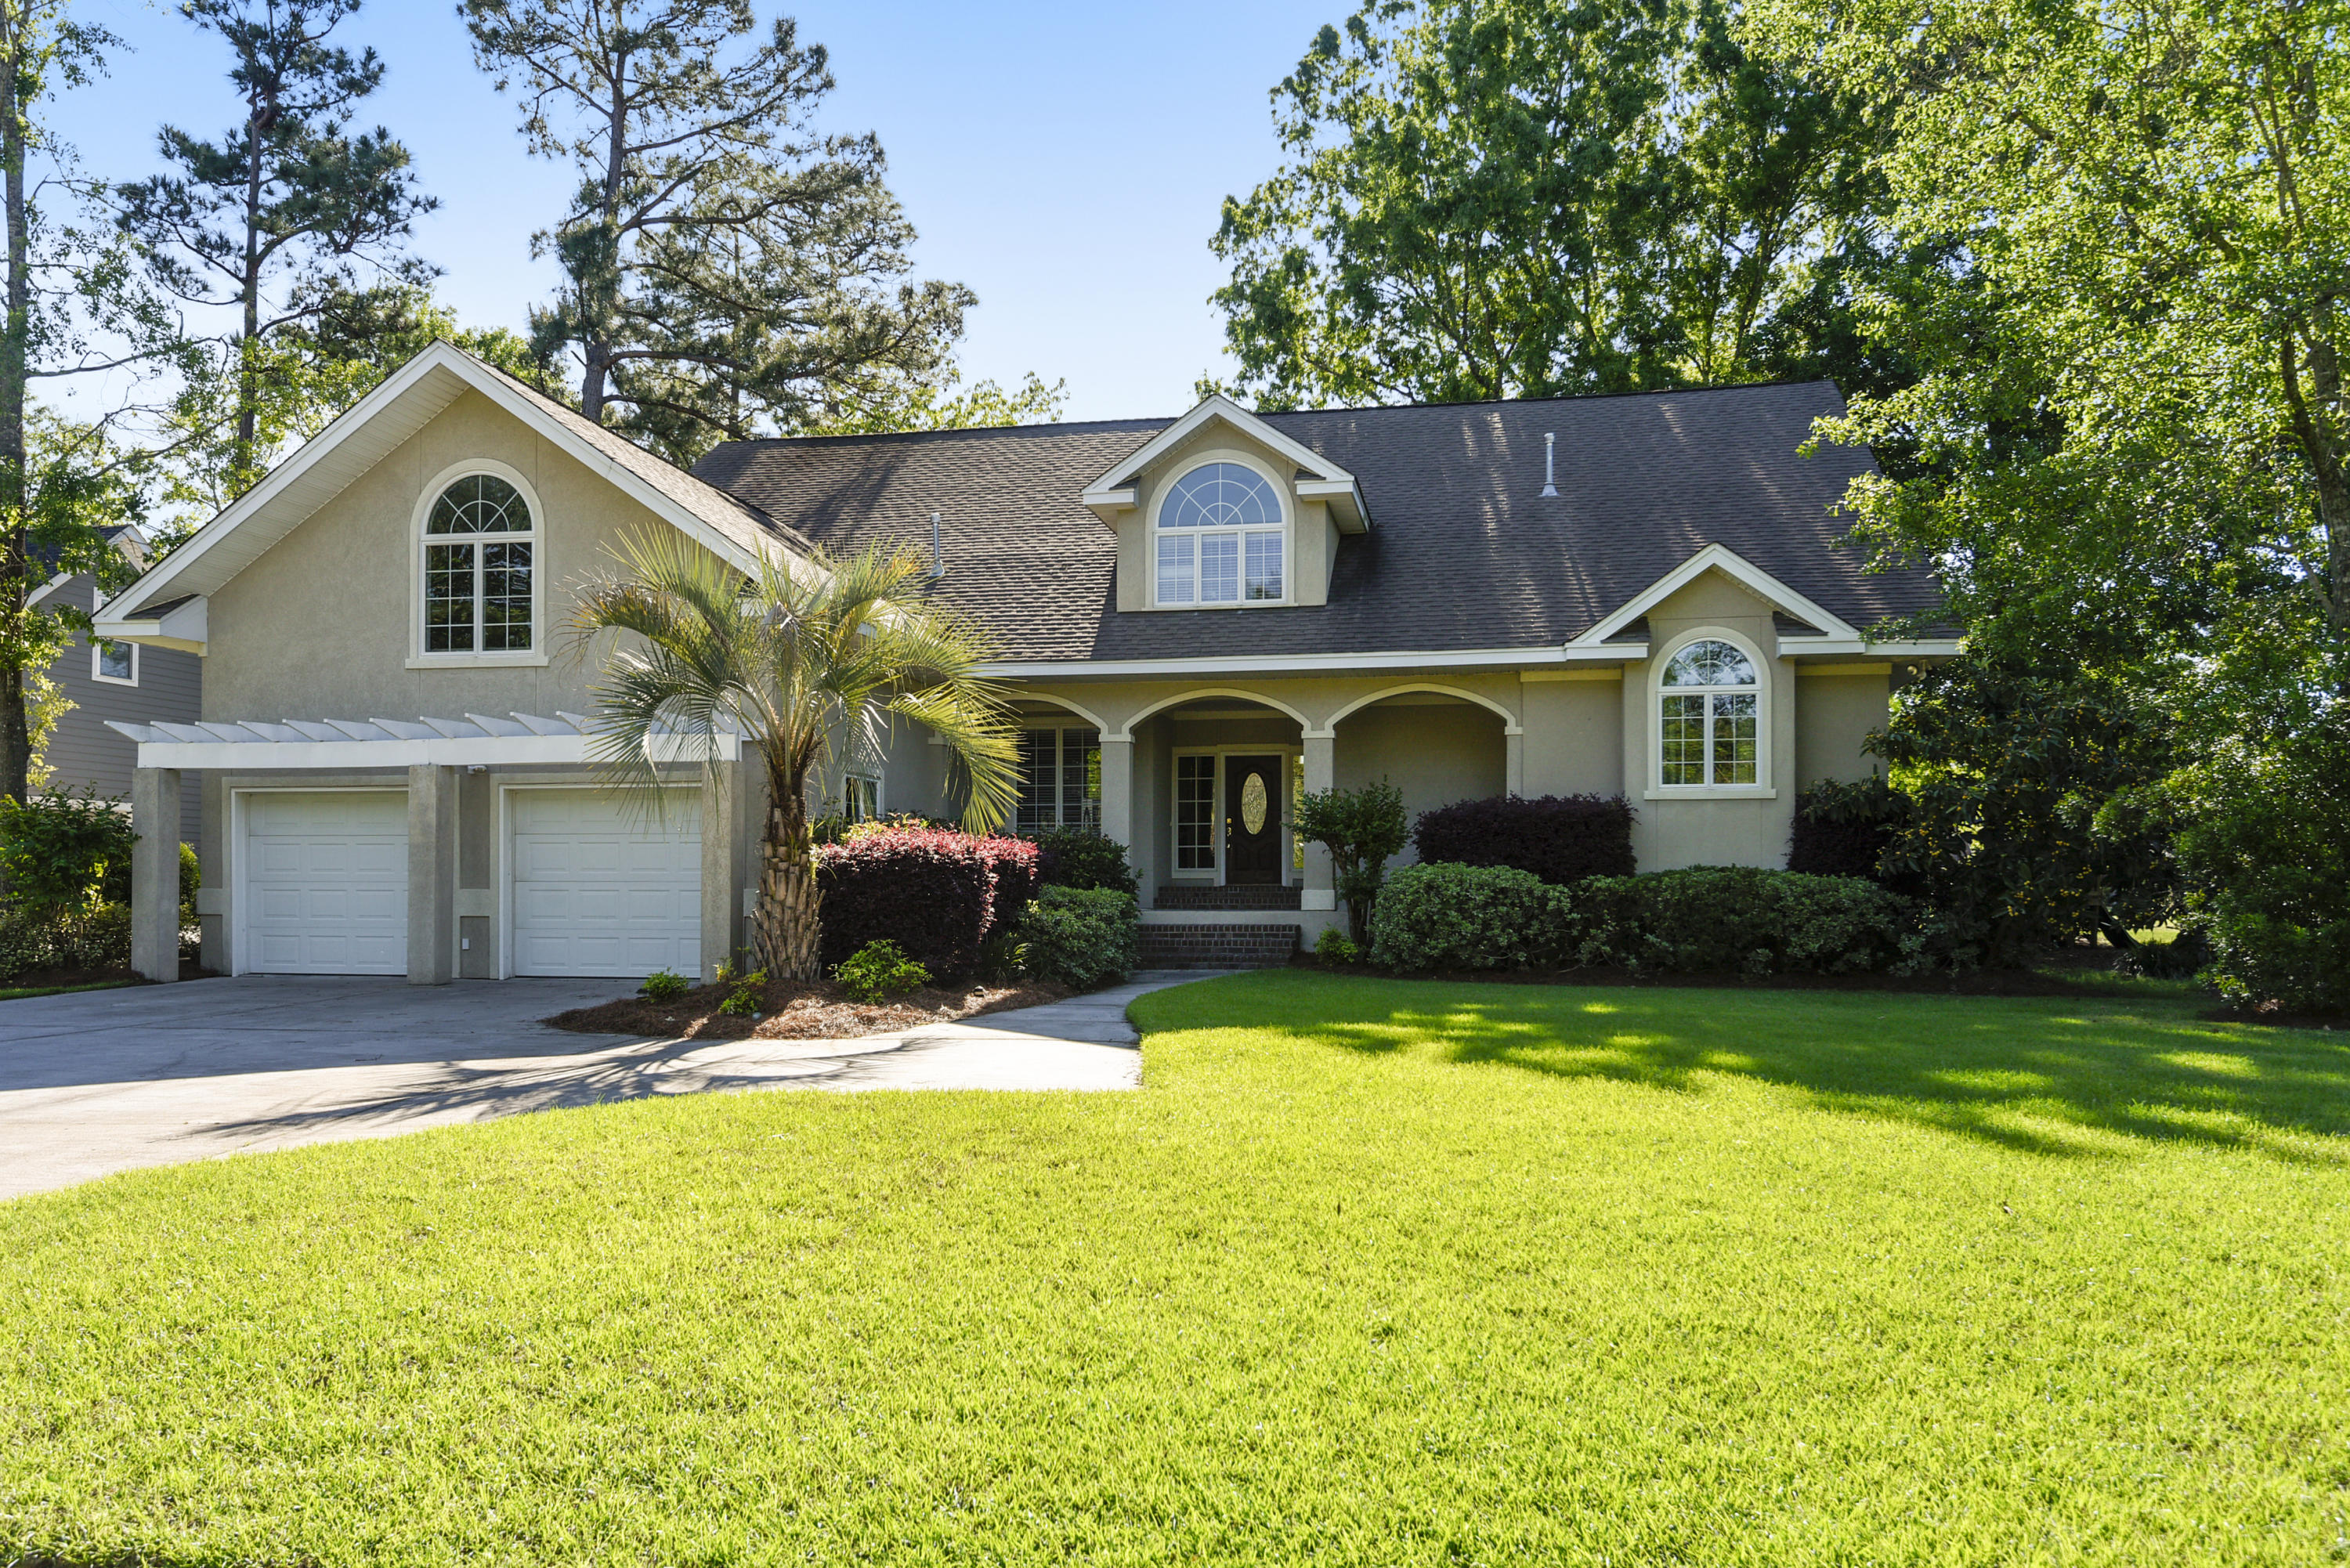 Coosaw Creek Country Club Homes For Sale - 8855 Fairway Woods, North Charleston, SC - 57